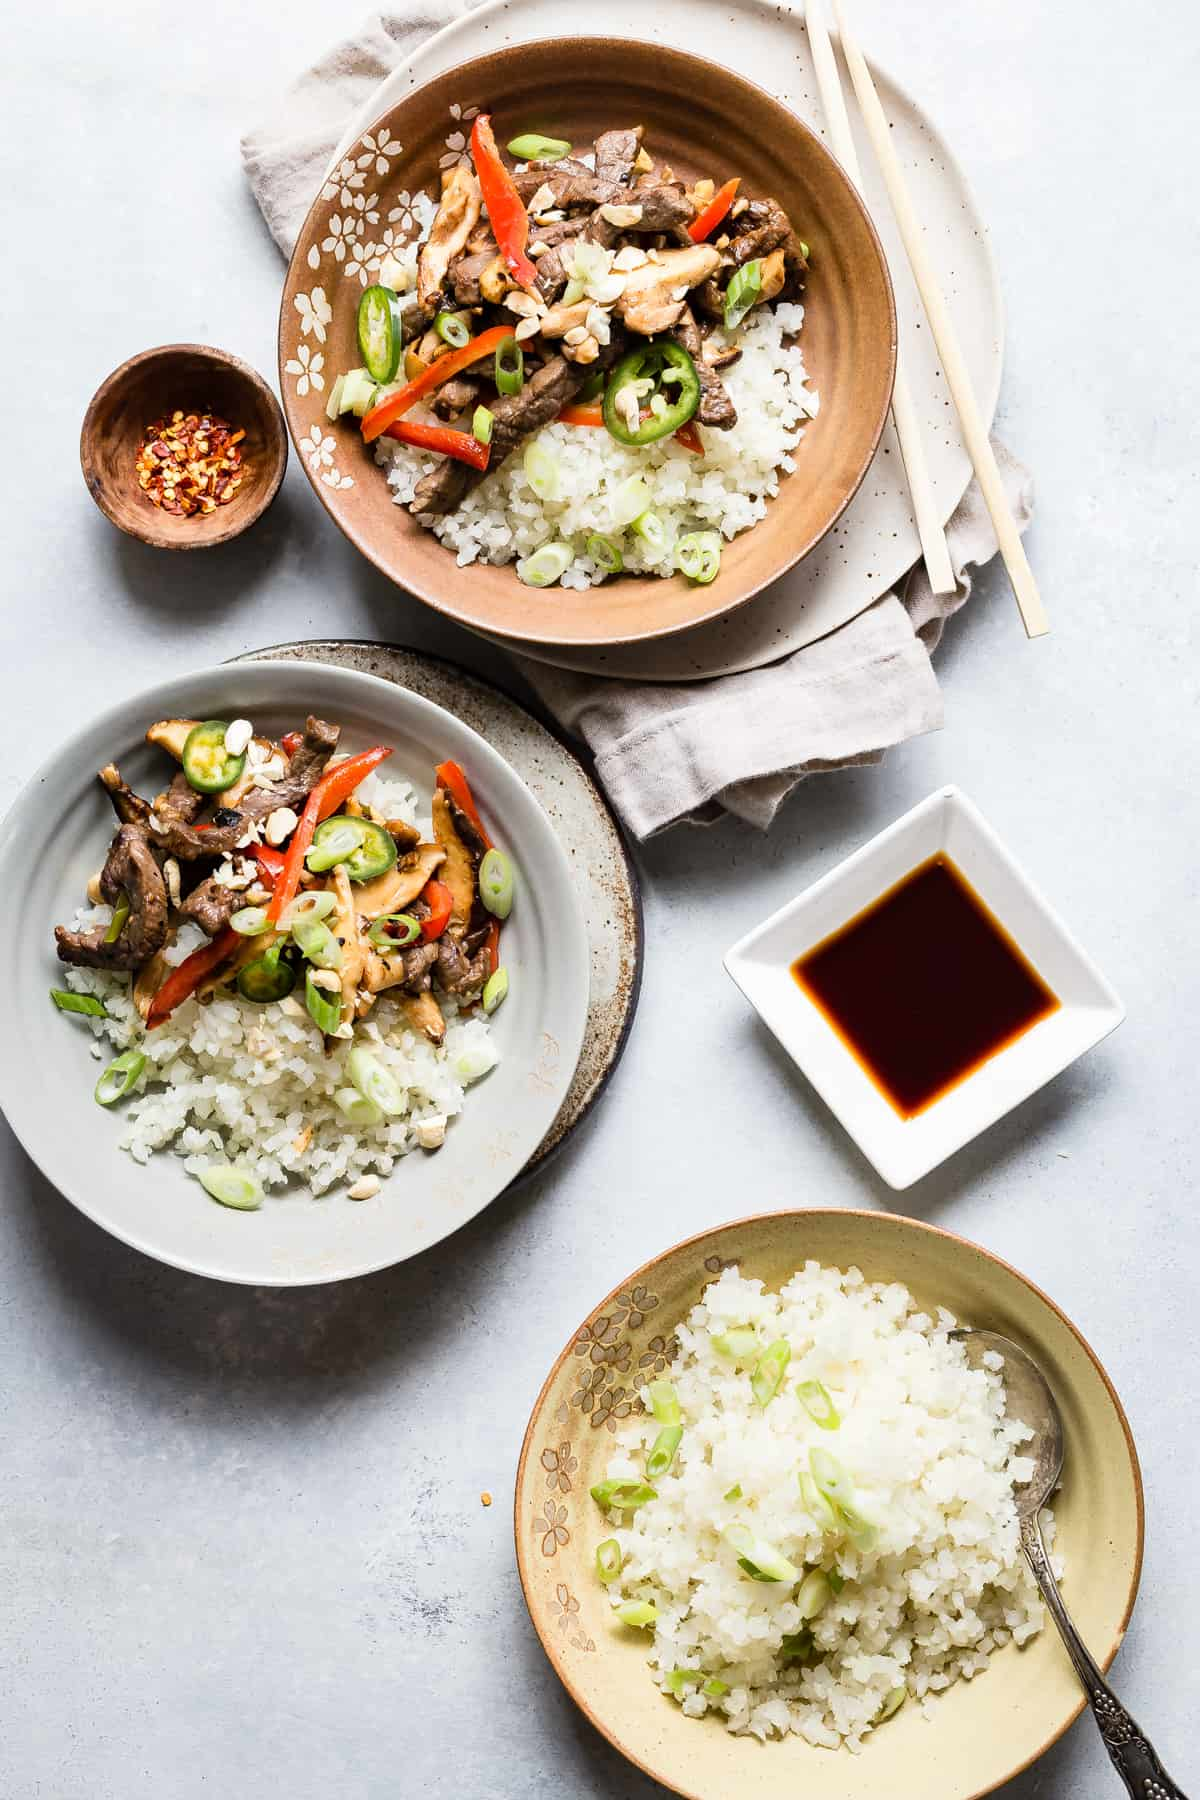 Try this beef and mushroom stir fry for dinner with cauliflower rice!